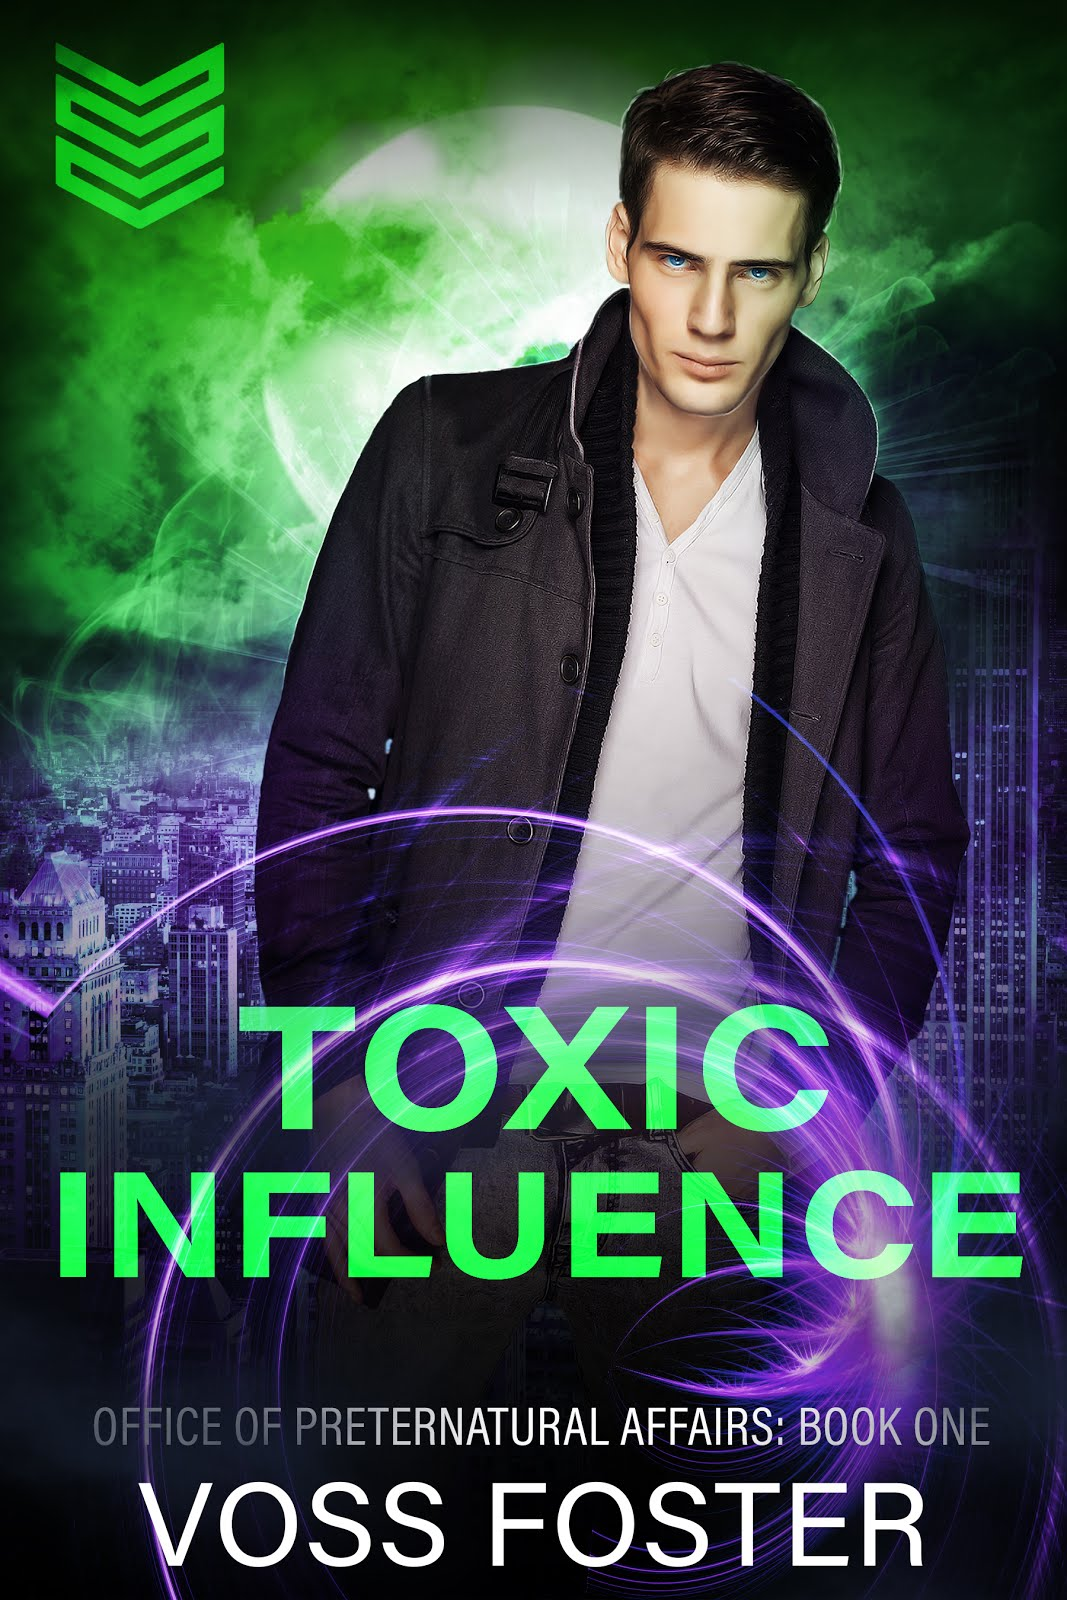 TOXIC INFLUENCE